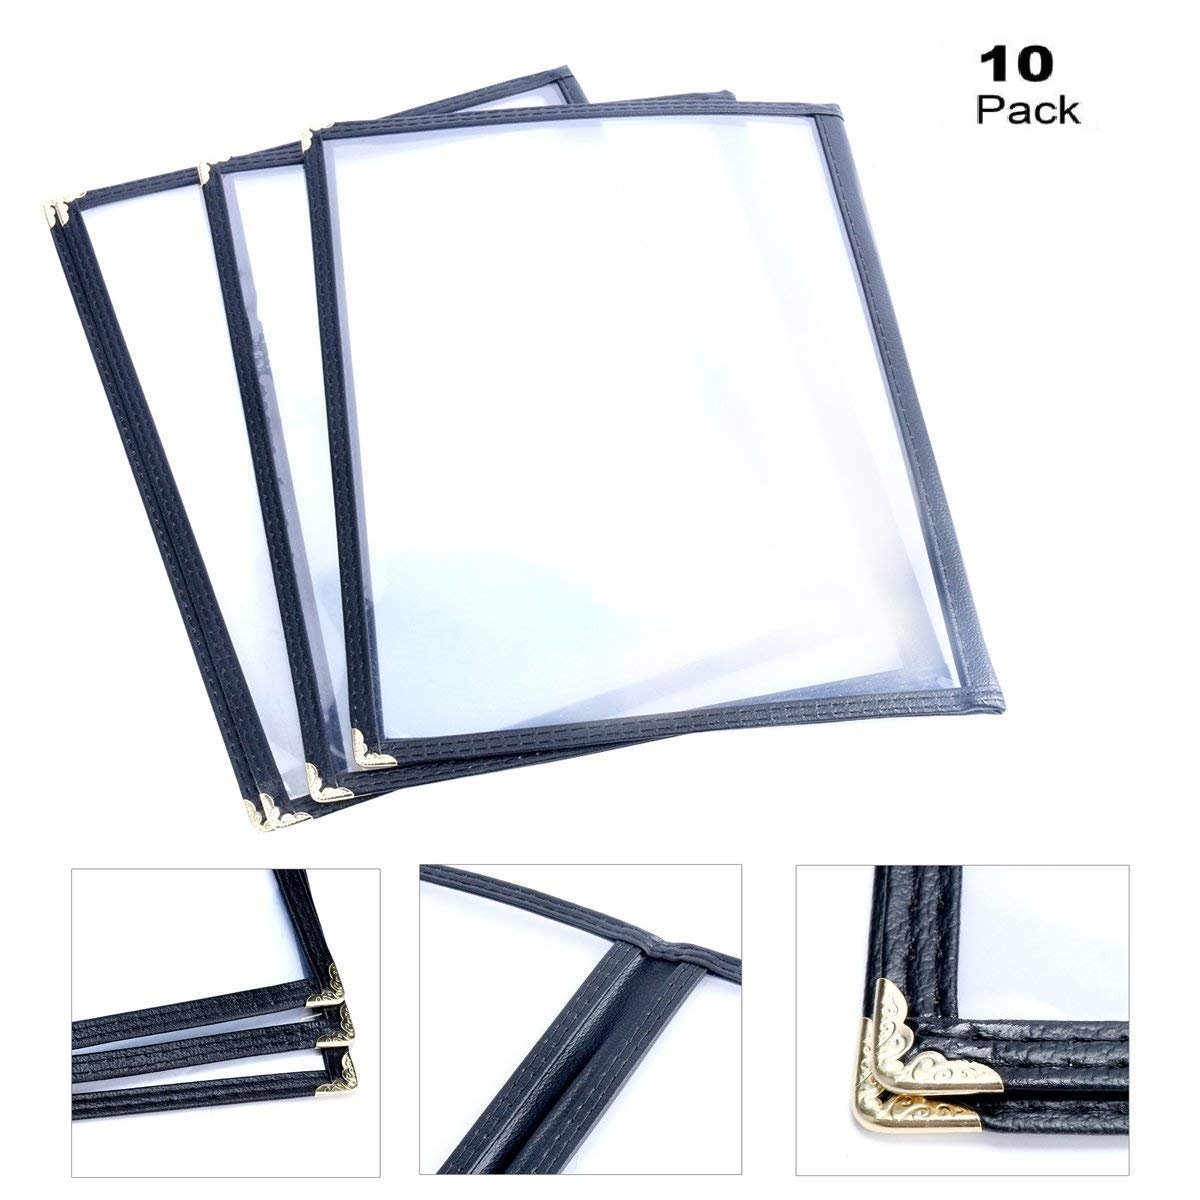 (10 Pack) Yaekoo Double Fold Menu Cover for 8.5 x 11 Inch 2 page , Restaurant Recipe Menu Covers (2 Page 4 view)